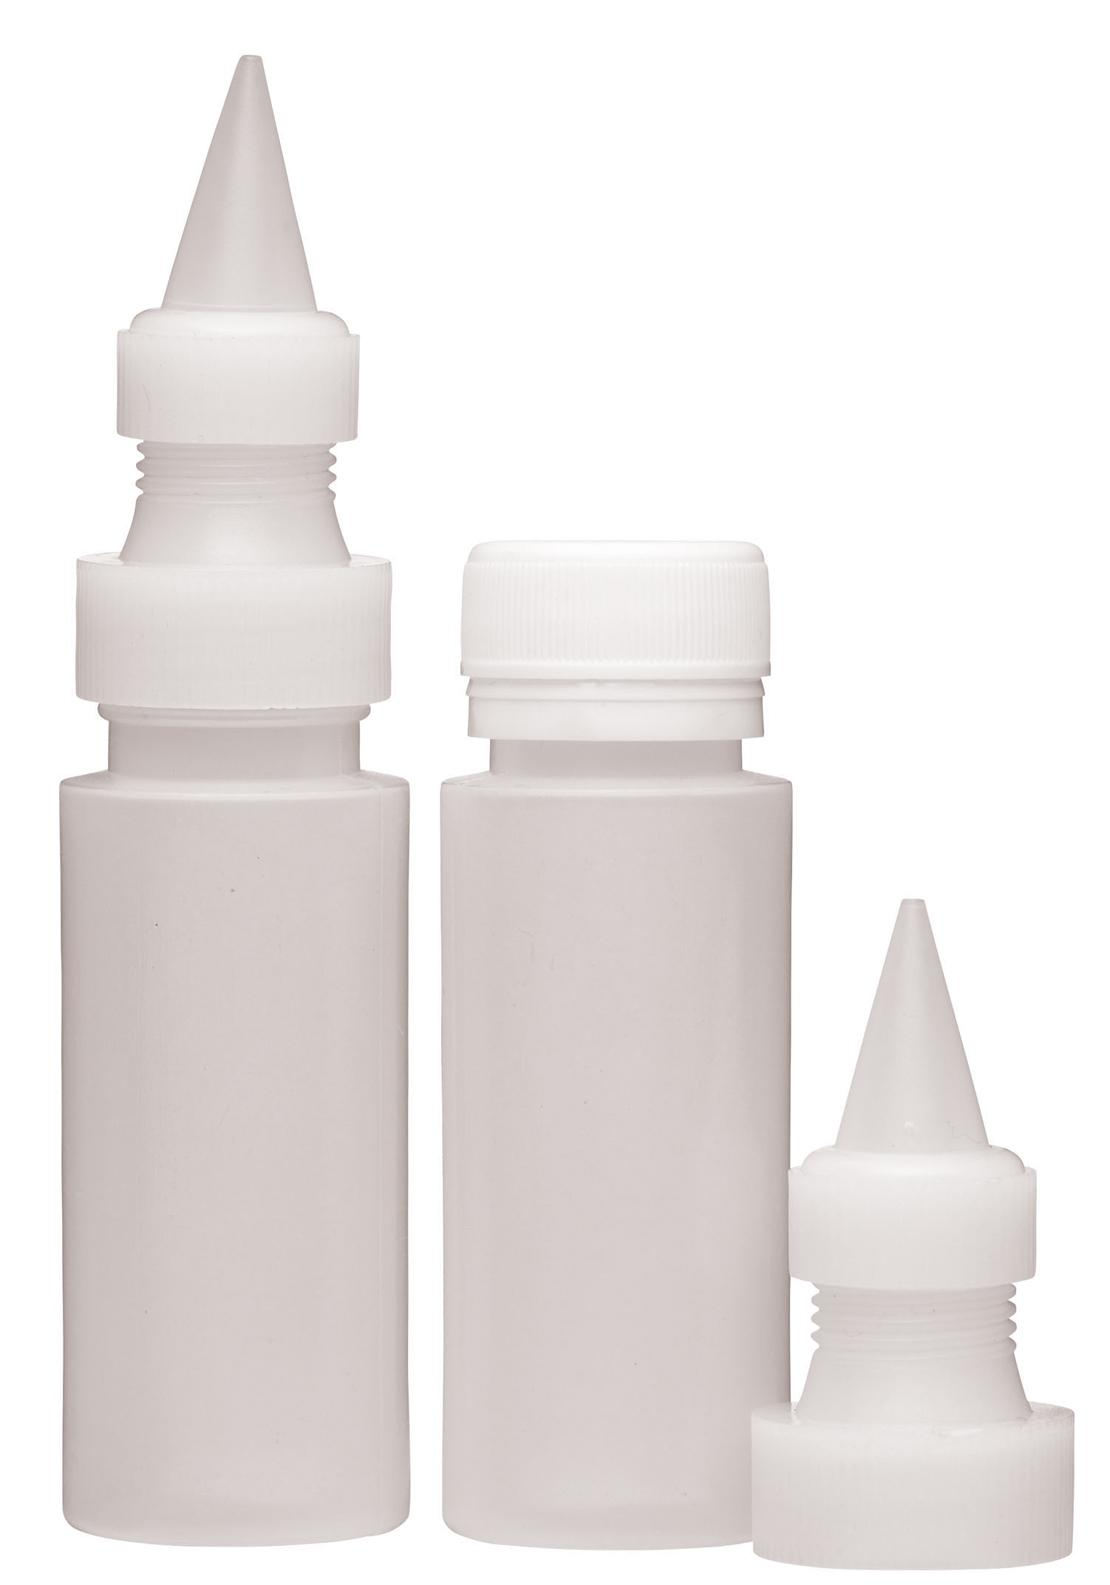 Sweetly Does It Icing Bottles (Set of 2)